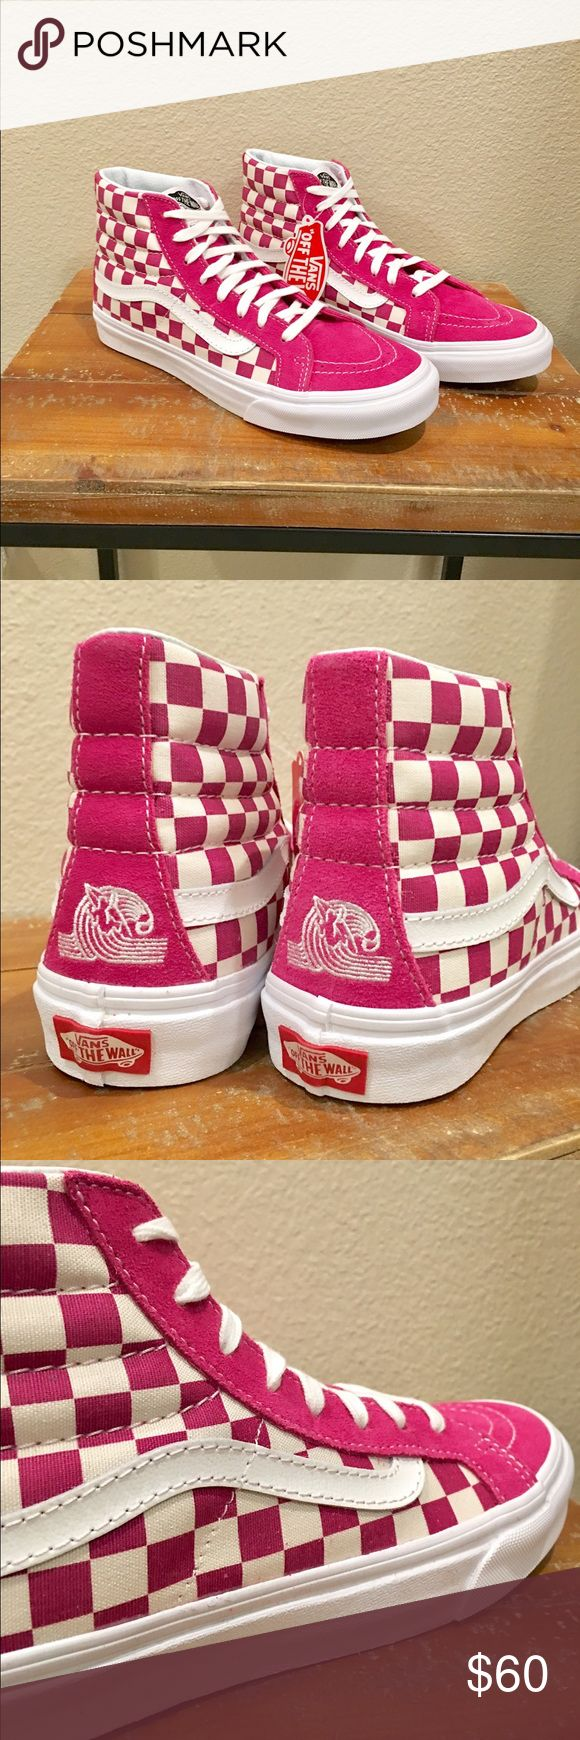 Vans Sk8 Hi Slim Us Open Checkerboard Vans NWB. ♀️ So rad! Dark pink and white checkerboard Slim Sk8. Women's size 8.5. I'm born and raised in The OC and these are straight HB OG Commemorating 2016 Vans US Open of Surfing in Huntington Beach, CA. Brand new. Perfect condition. Dark pink suede, white leather stripe, white laces on pure white walls. If you're Old Skool like me then you know how special these babies are♀️ Vans Shoes Sneakers